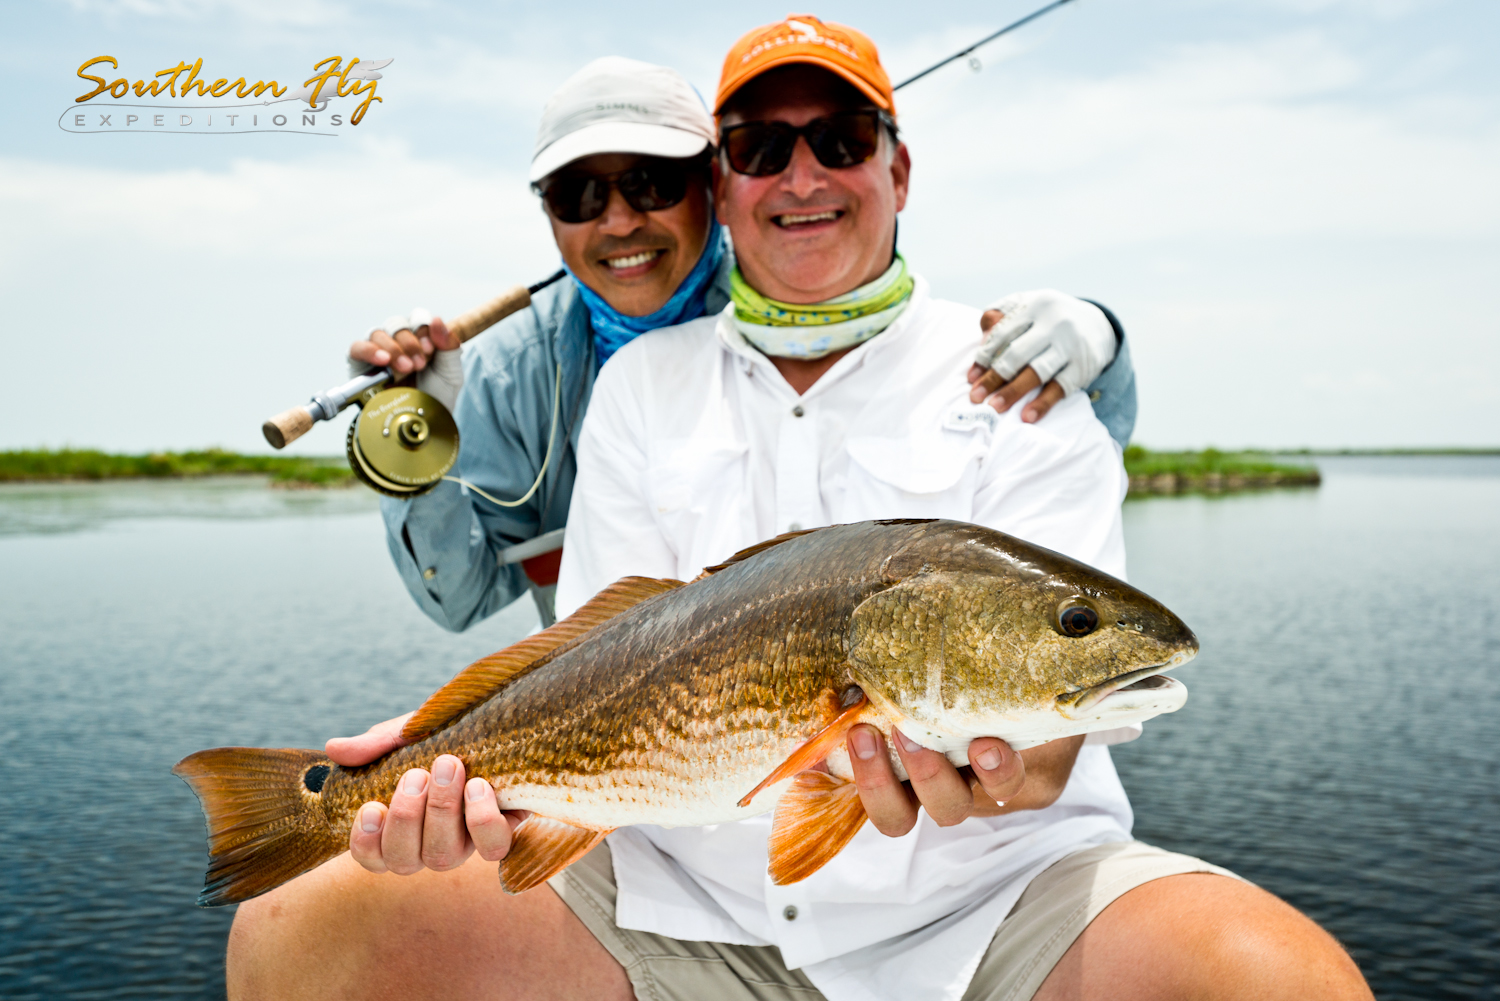 Photos of Fly Fishing with Friends and Southern Fly Expeditions